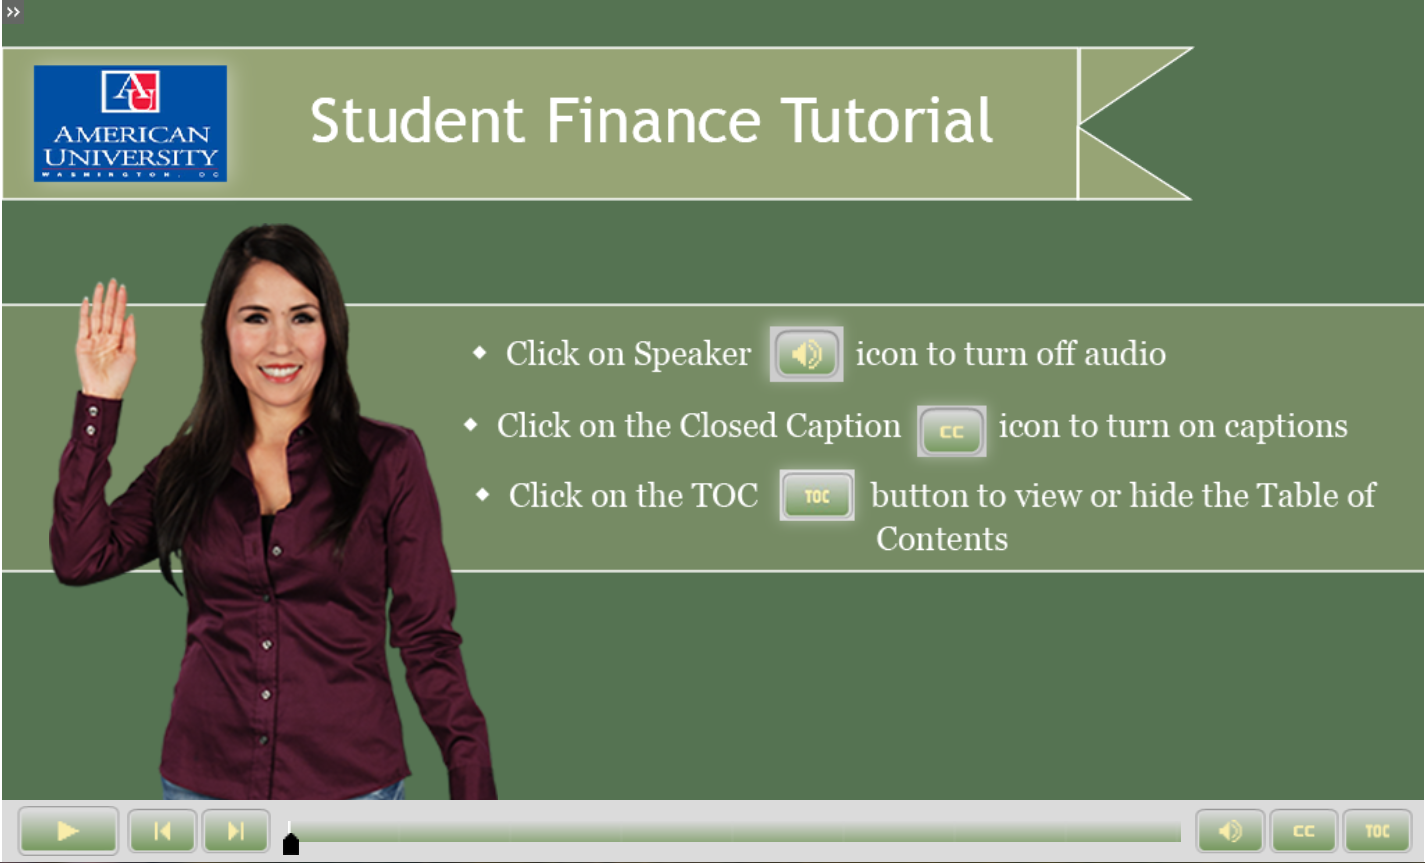 Image shows instructor waving, large banner reads Student Finance Tutorial